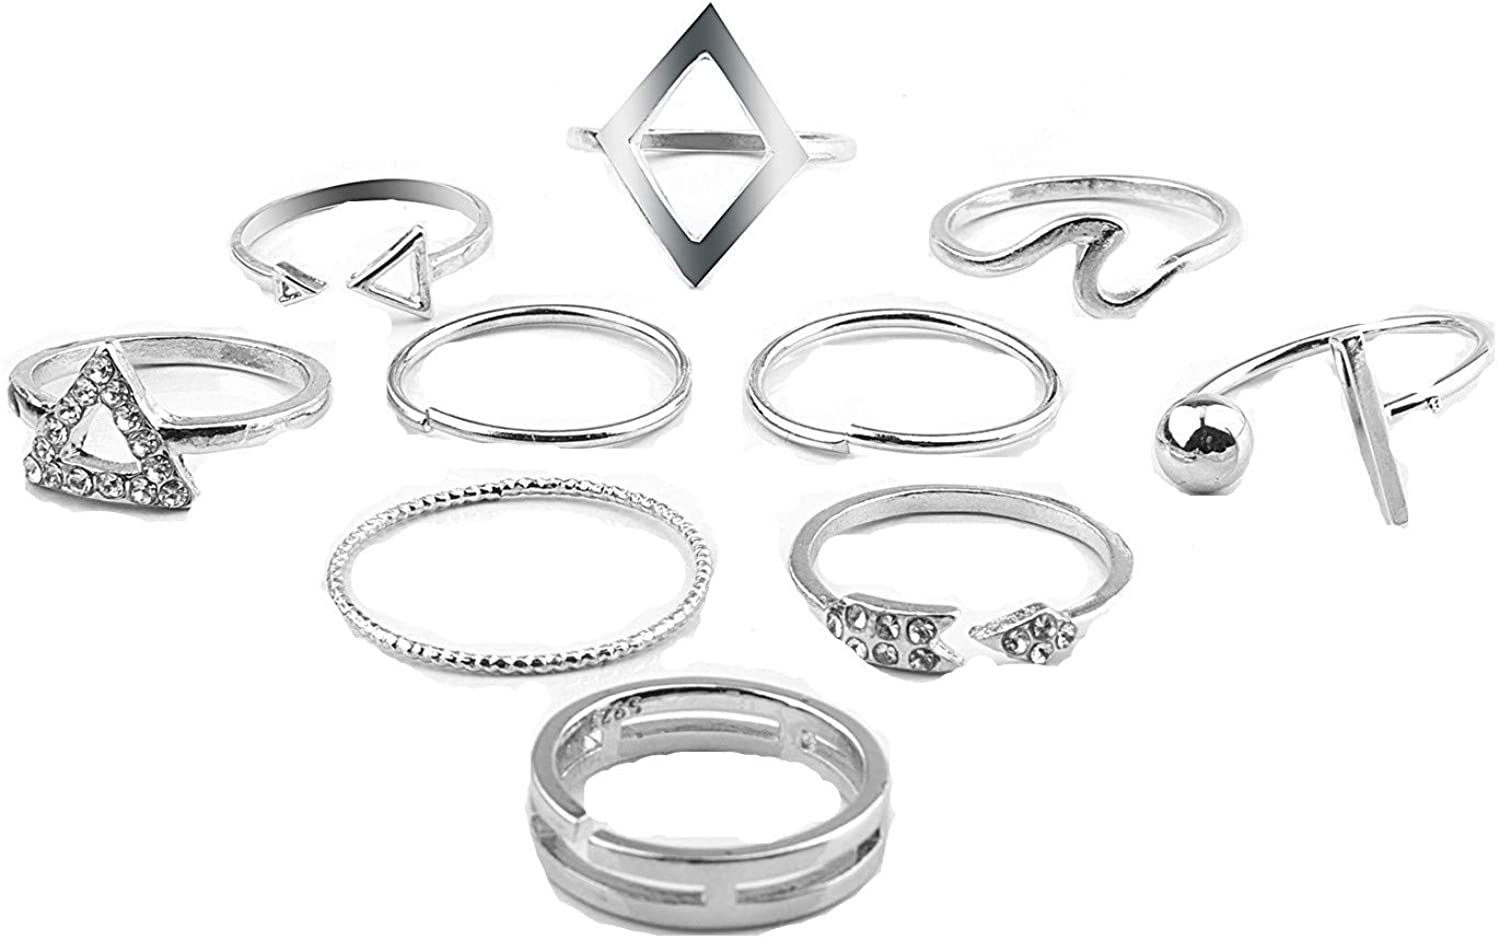 SOTOLAN 10PCS Bohemian Knuckle Ring Set Vintage Silver Crystal Joint Knuckle Ring Set for Women